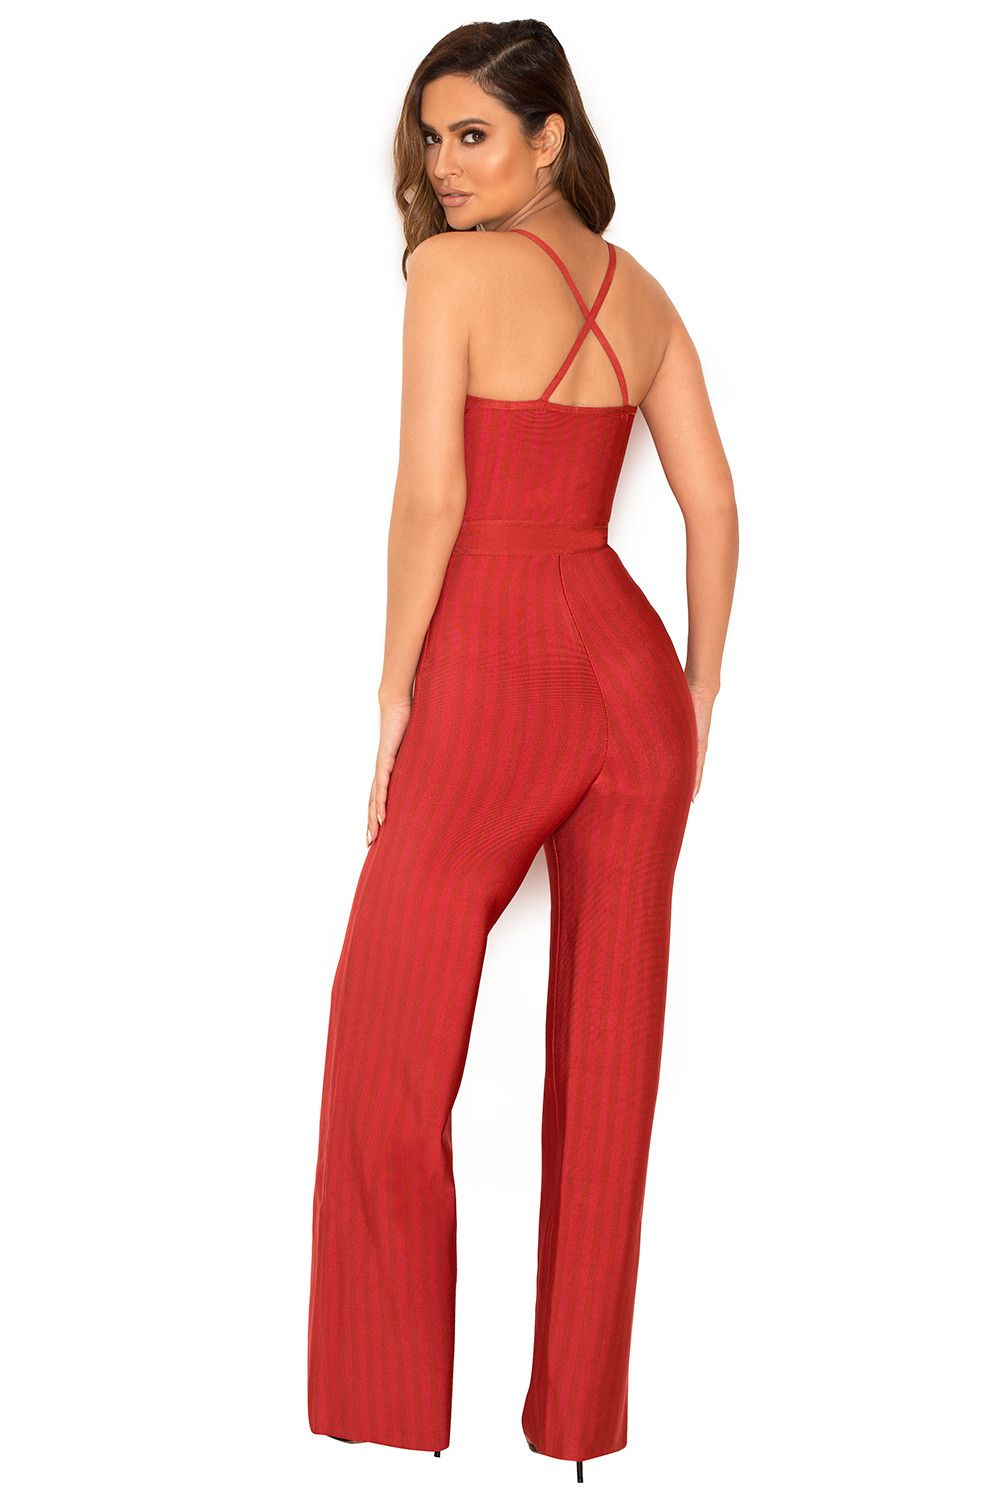 799d1ea82b Clothing   Jumpsuits    Devi  Red Strappy Bandage Jumpsuit